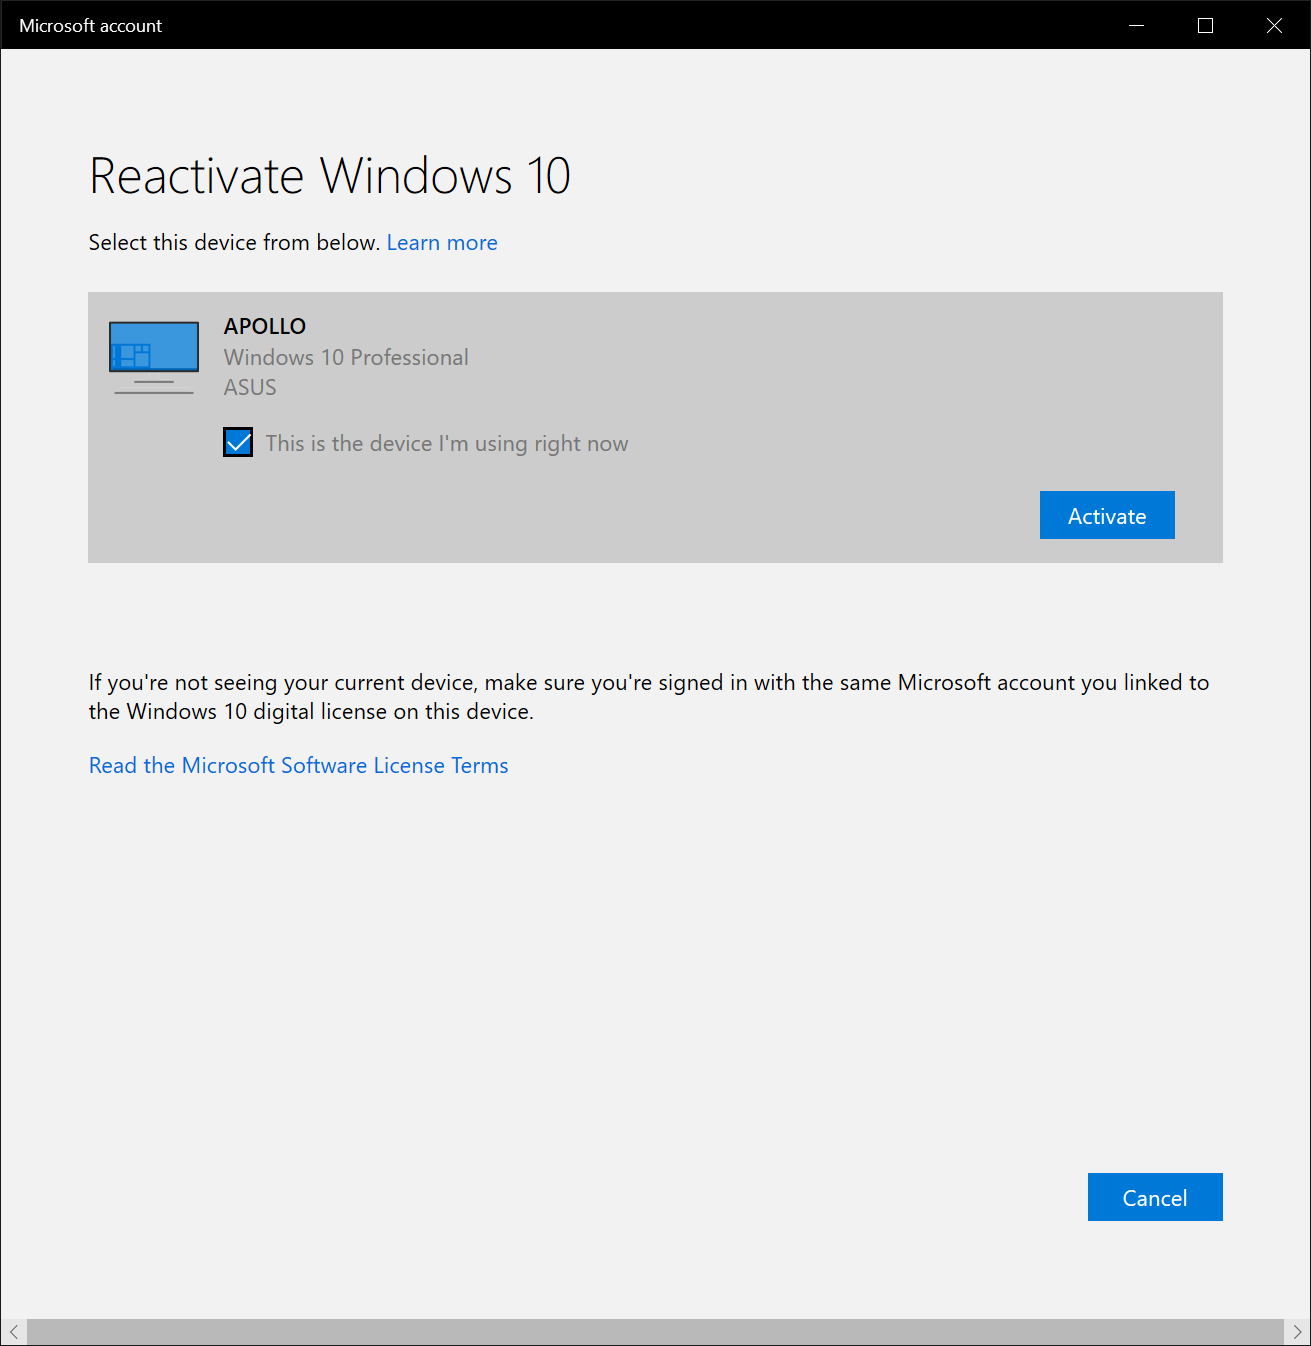 How To Reactivate Windows 10 Without A Microsoft Account How